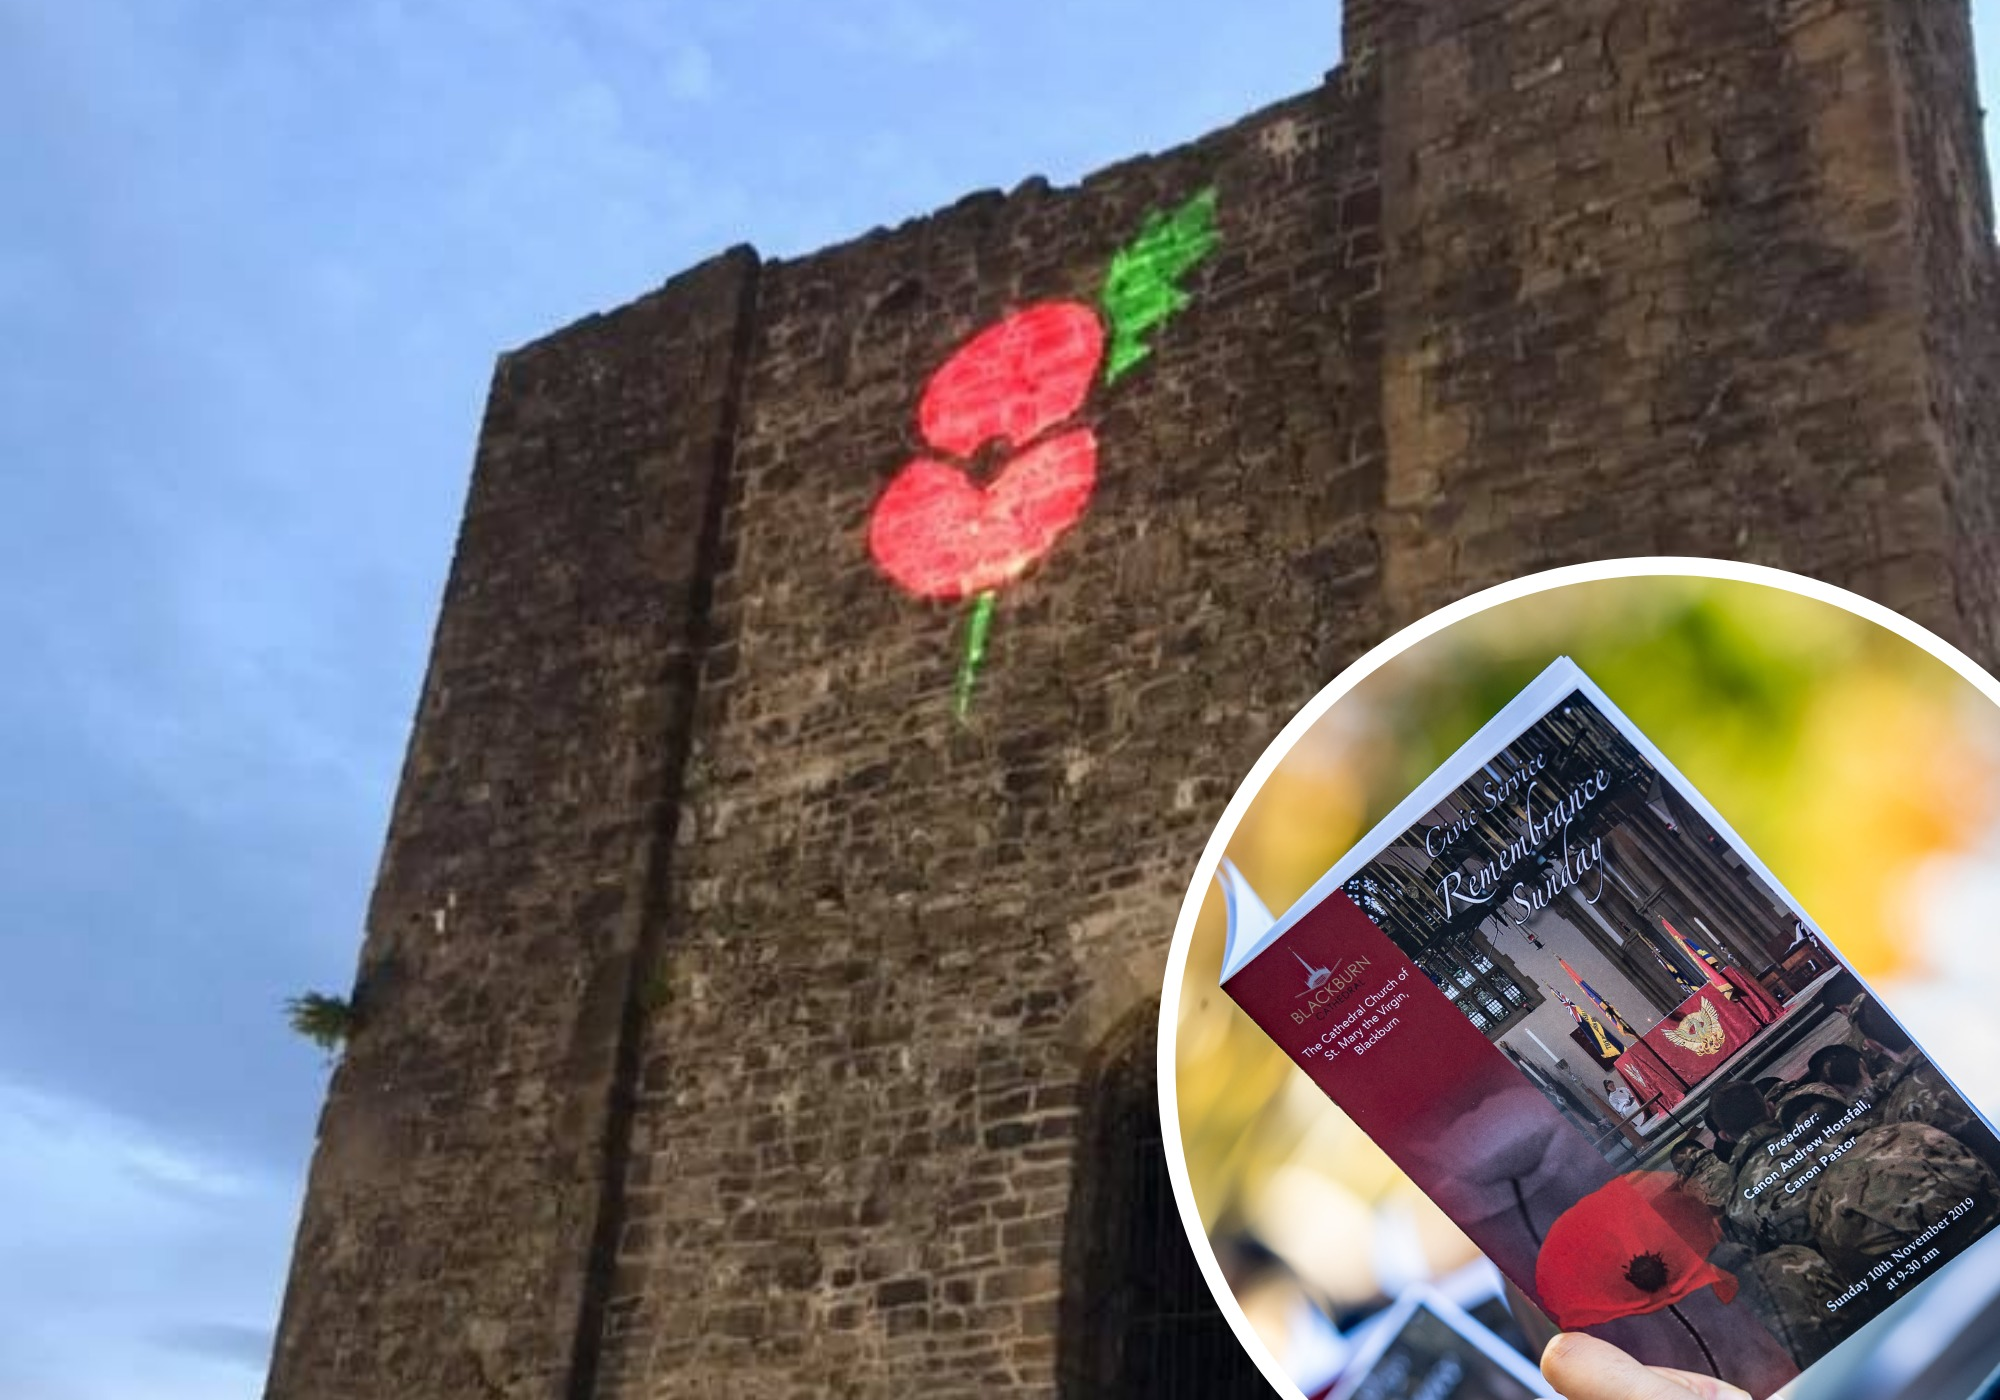 Councils urge East Lancashire residents to pay tribute in a safe way on Remembrance Sunday